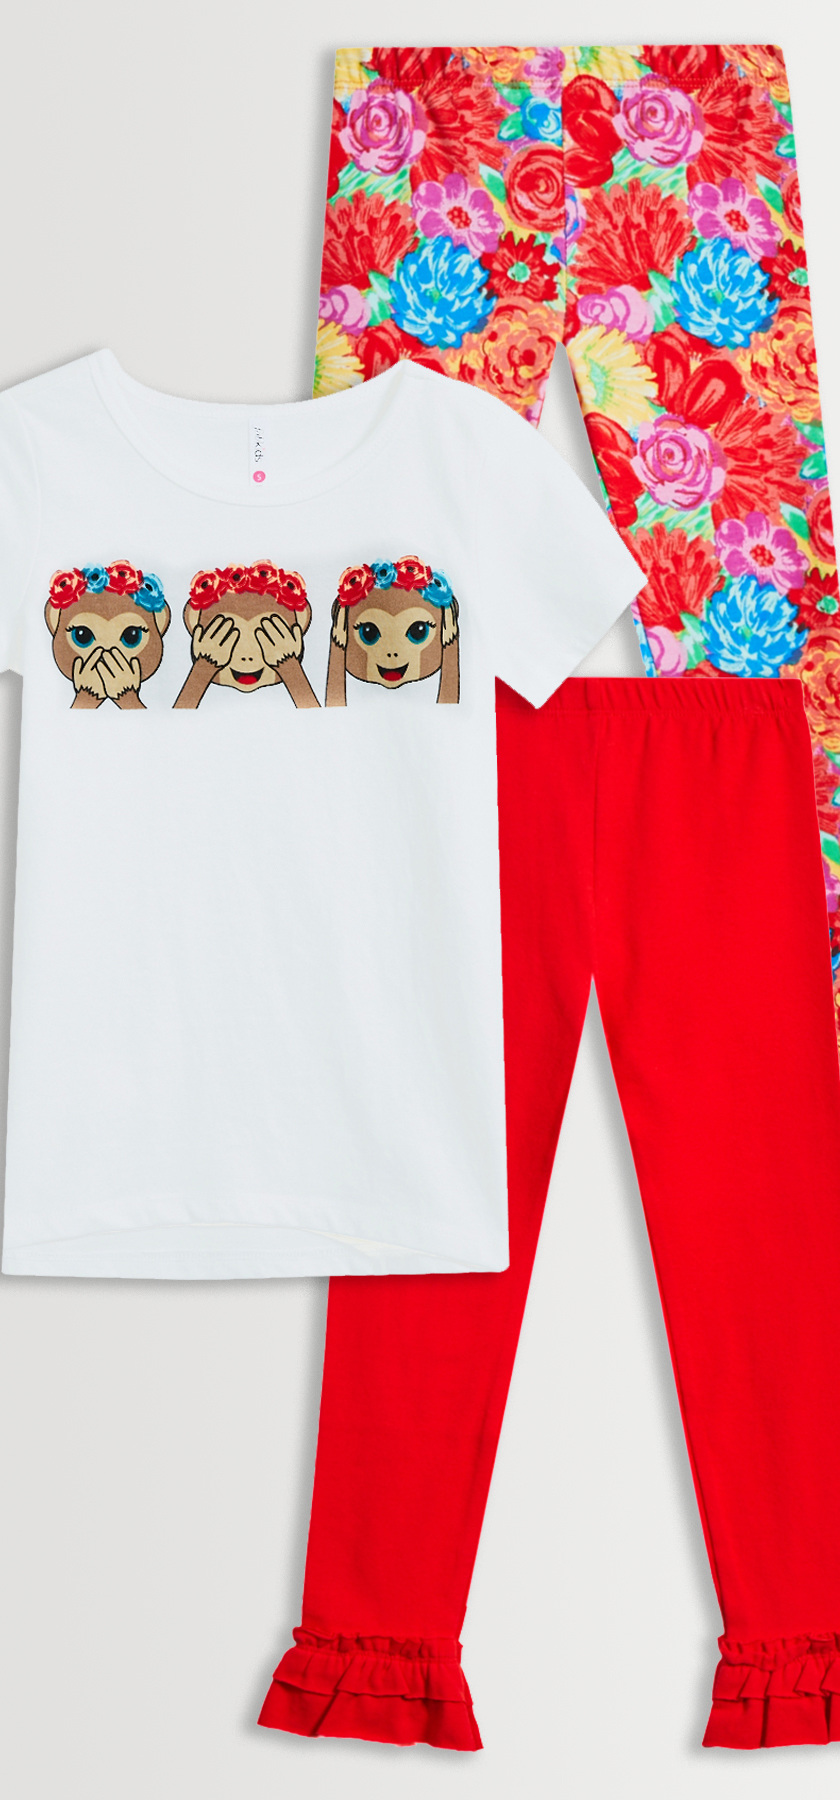 Monkey flower crown legging pack fabkids fabkidss standard terms of service regarding shipping returns and exchanges apply terms subject to change at any time without notice izmirmasajfo